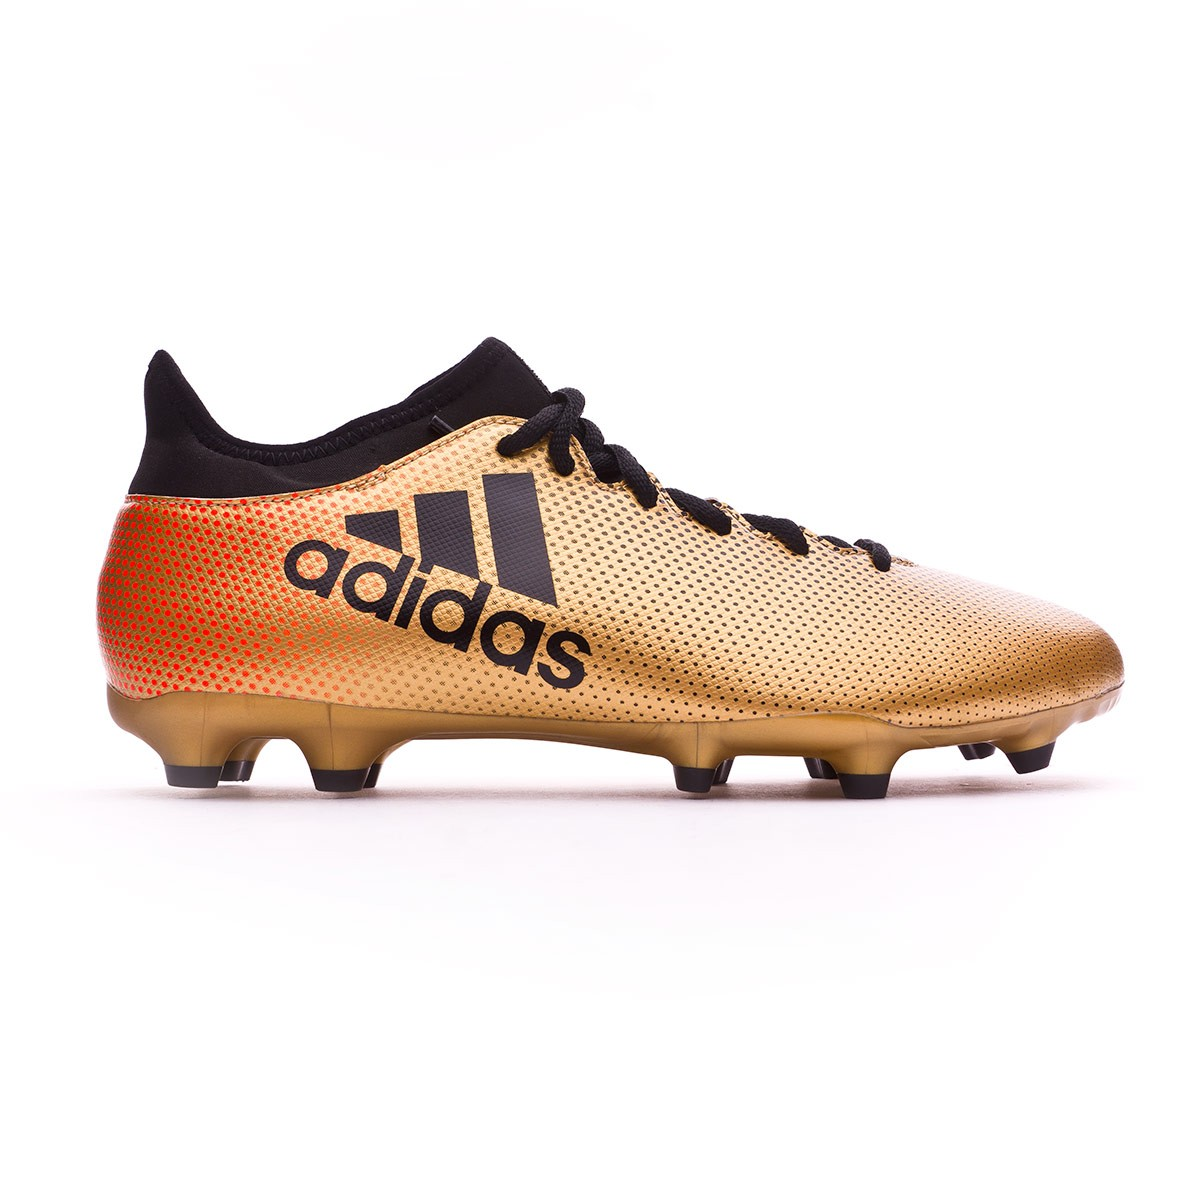 a1236423910 Football Boots adidas X 17.3 FG Tactile gold metallic-Core black-Solar red  - Football store Fútbol Emotion